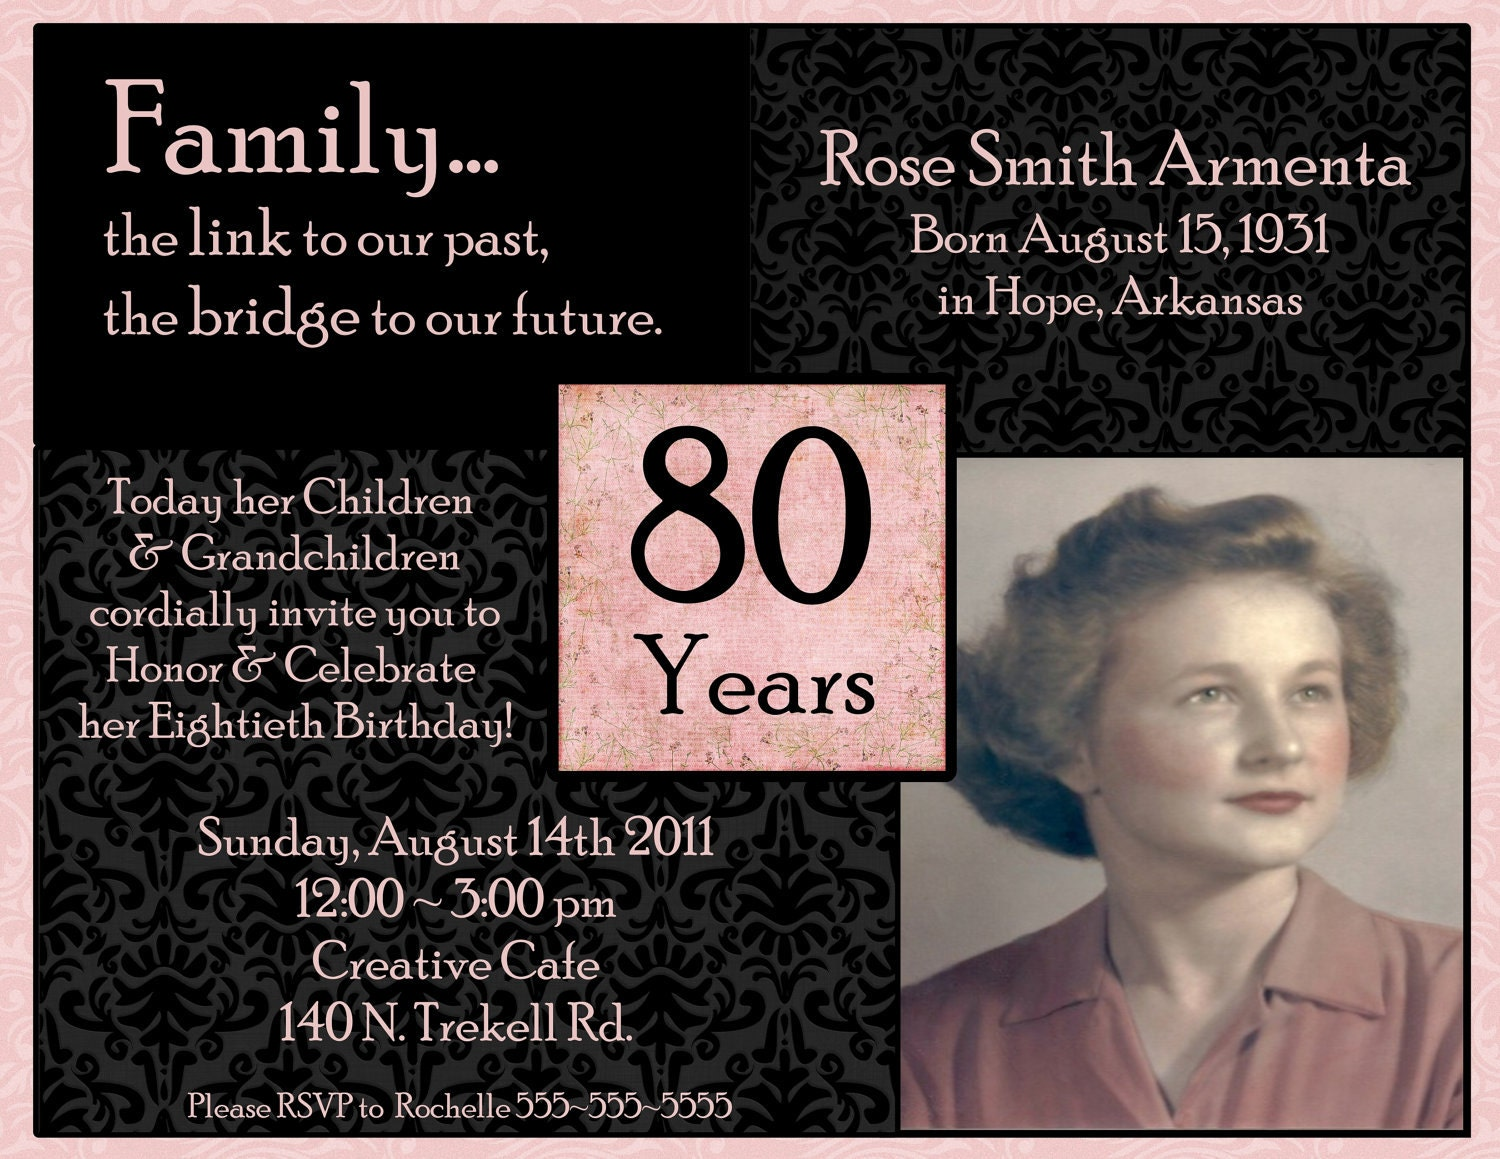 65Th Birthday Party Invitations is amazing invitation design